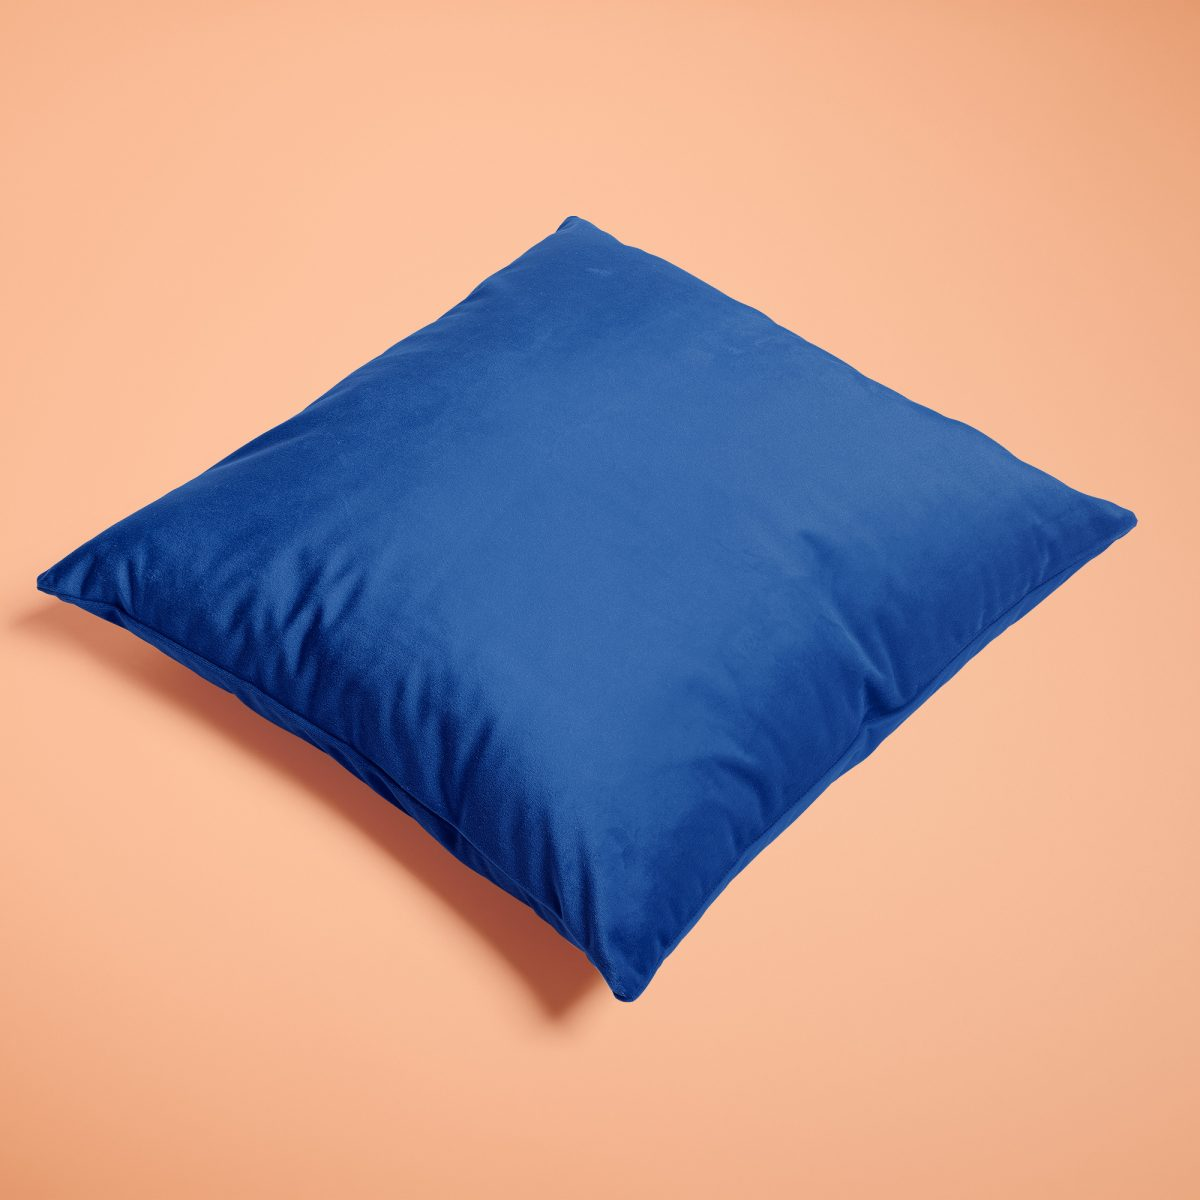 royal-blue-covers-of-the-rainbow-2